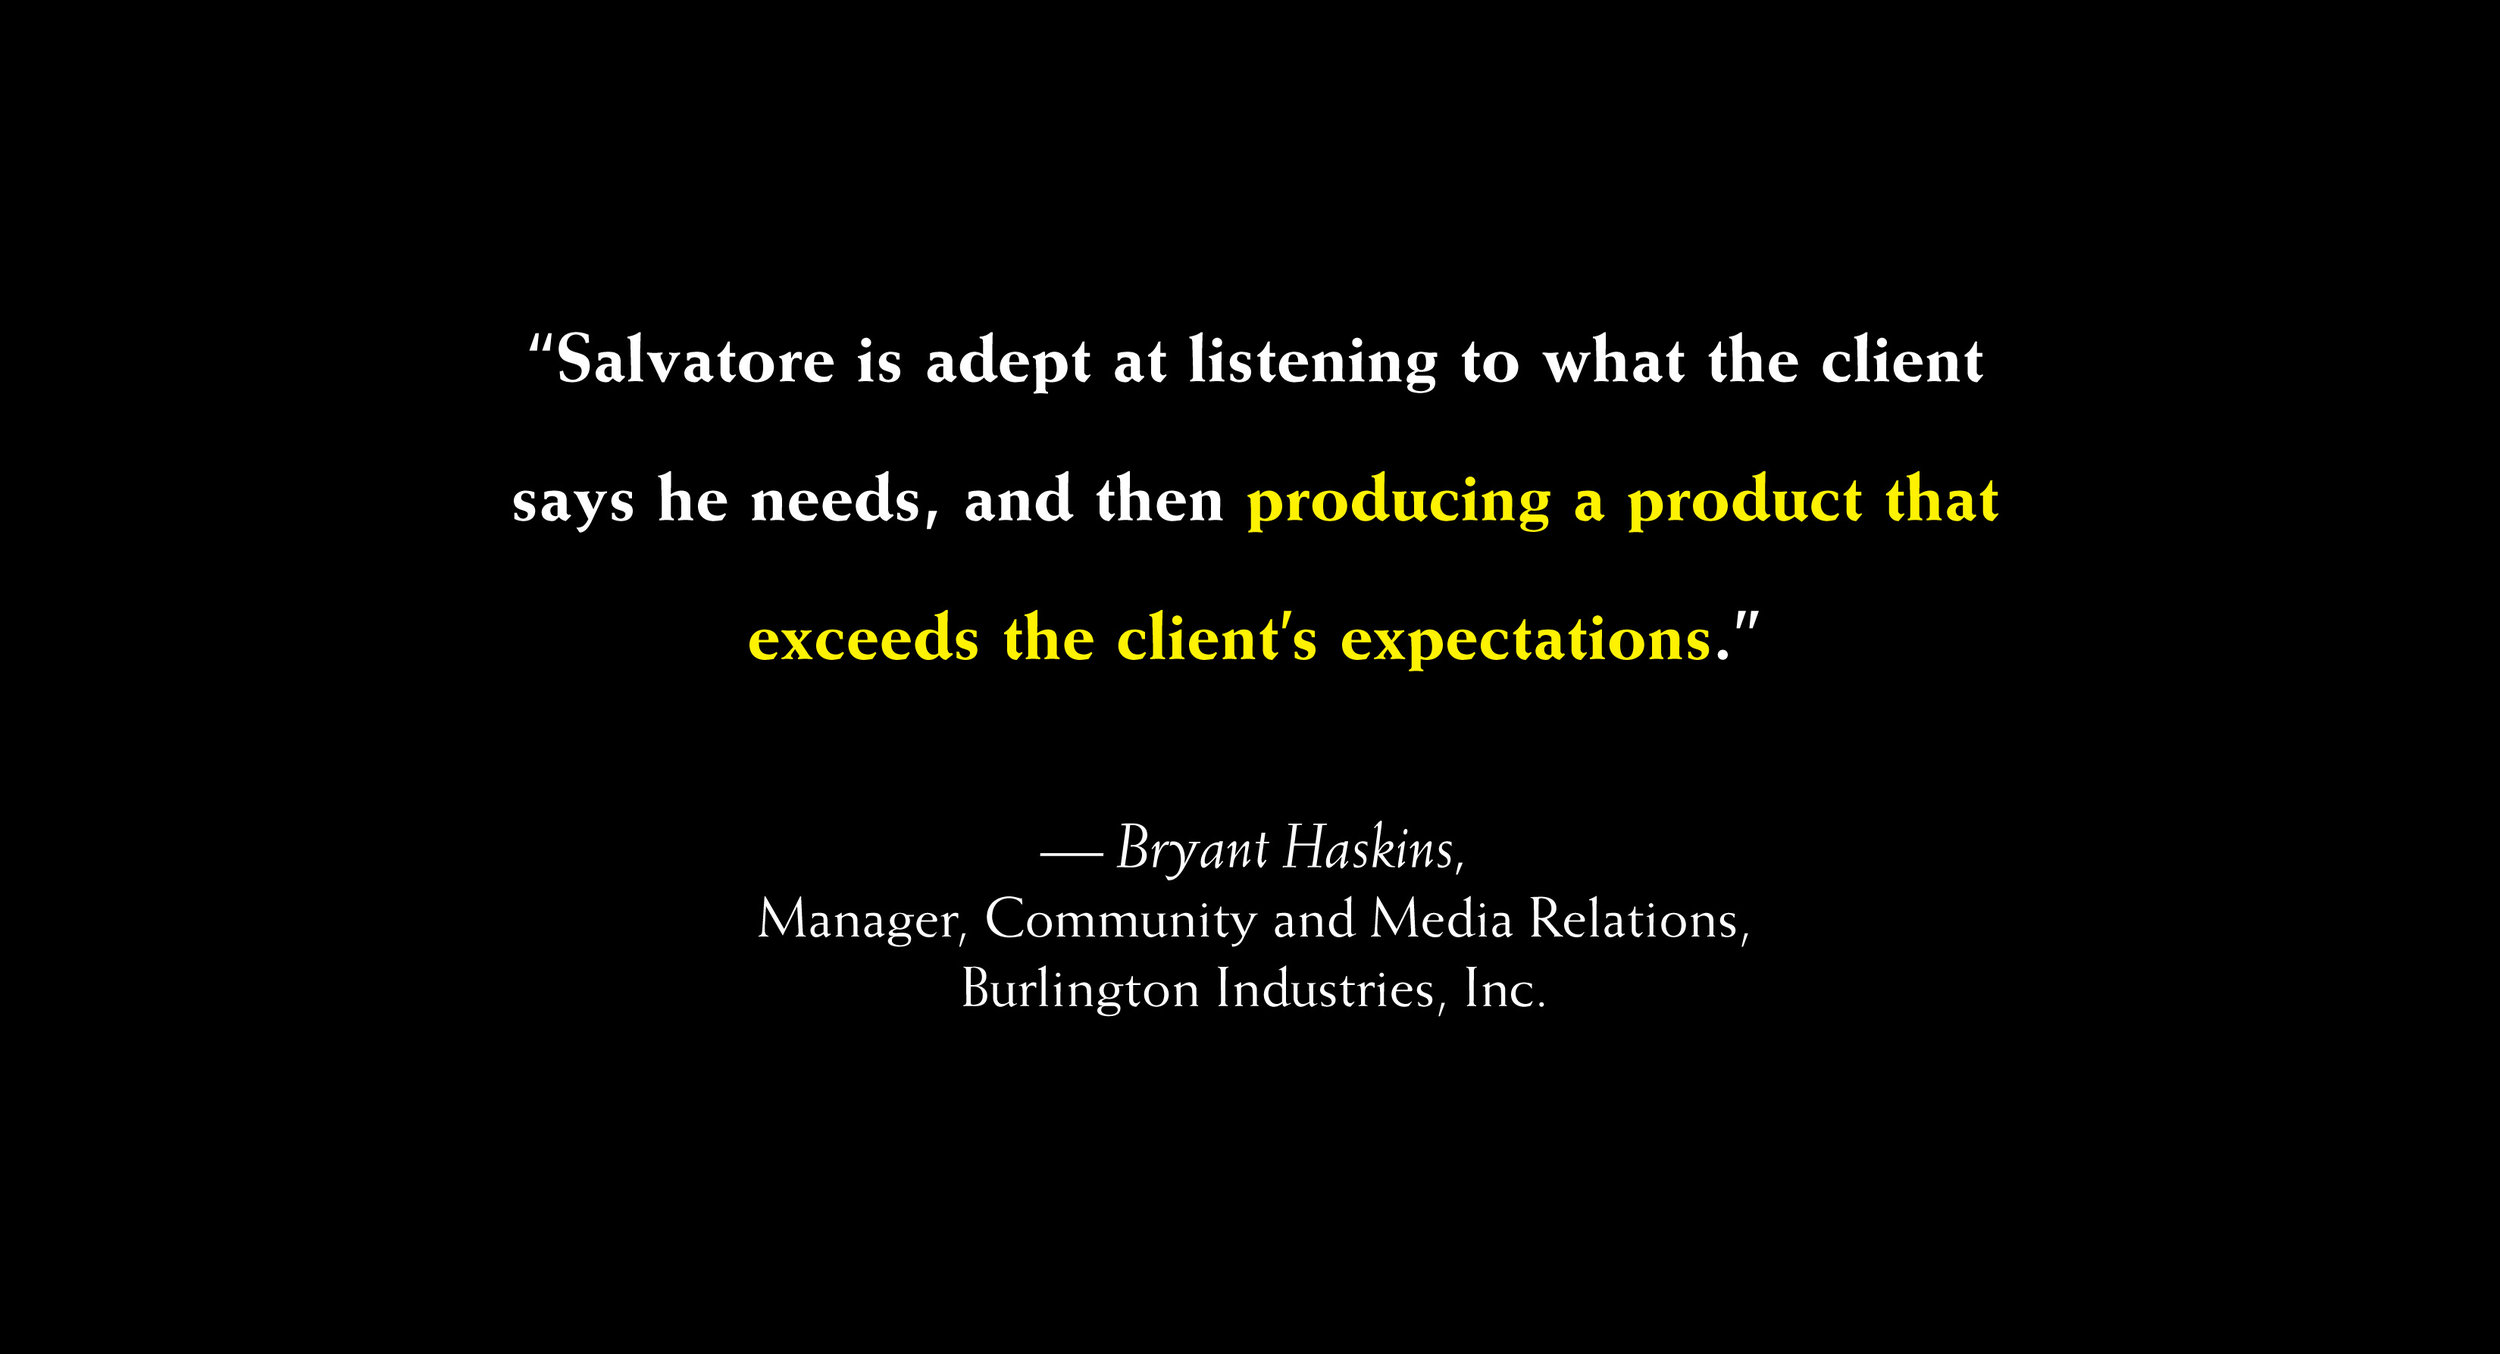 quote 3 burlington industries.jpg